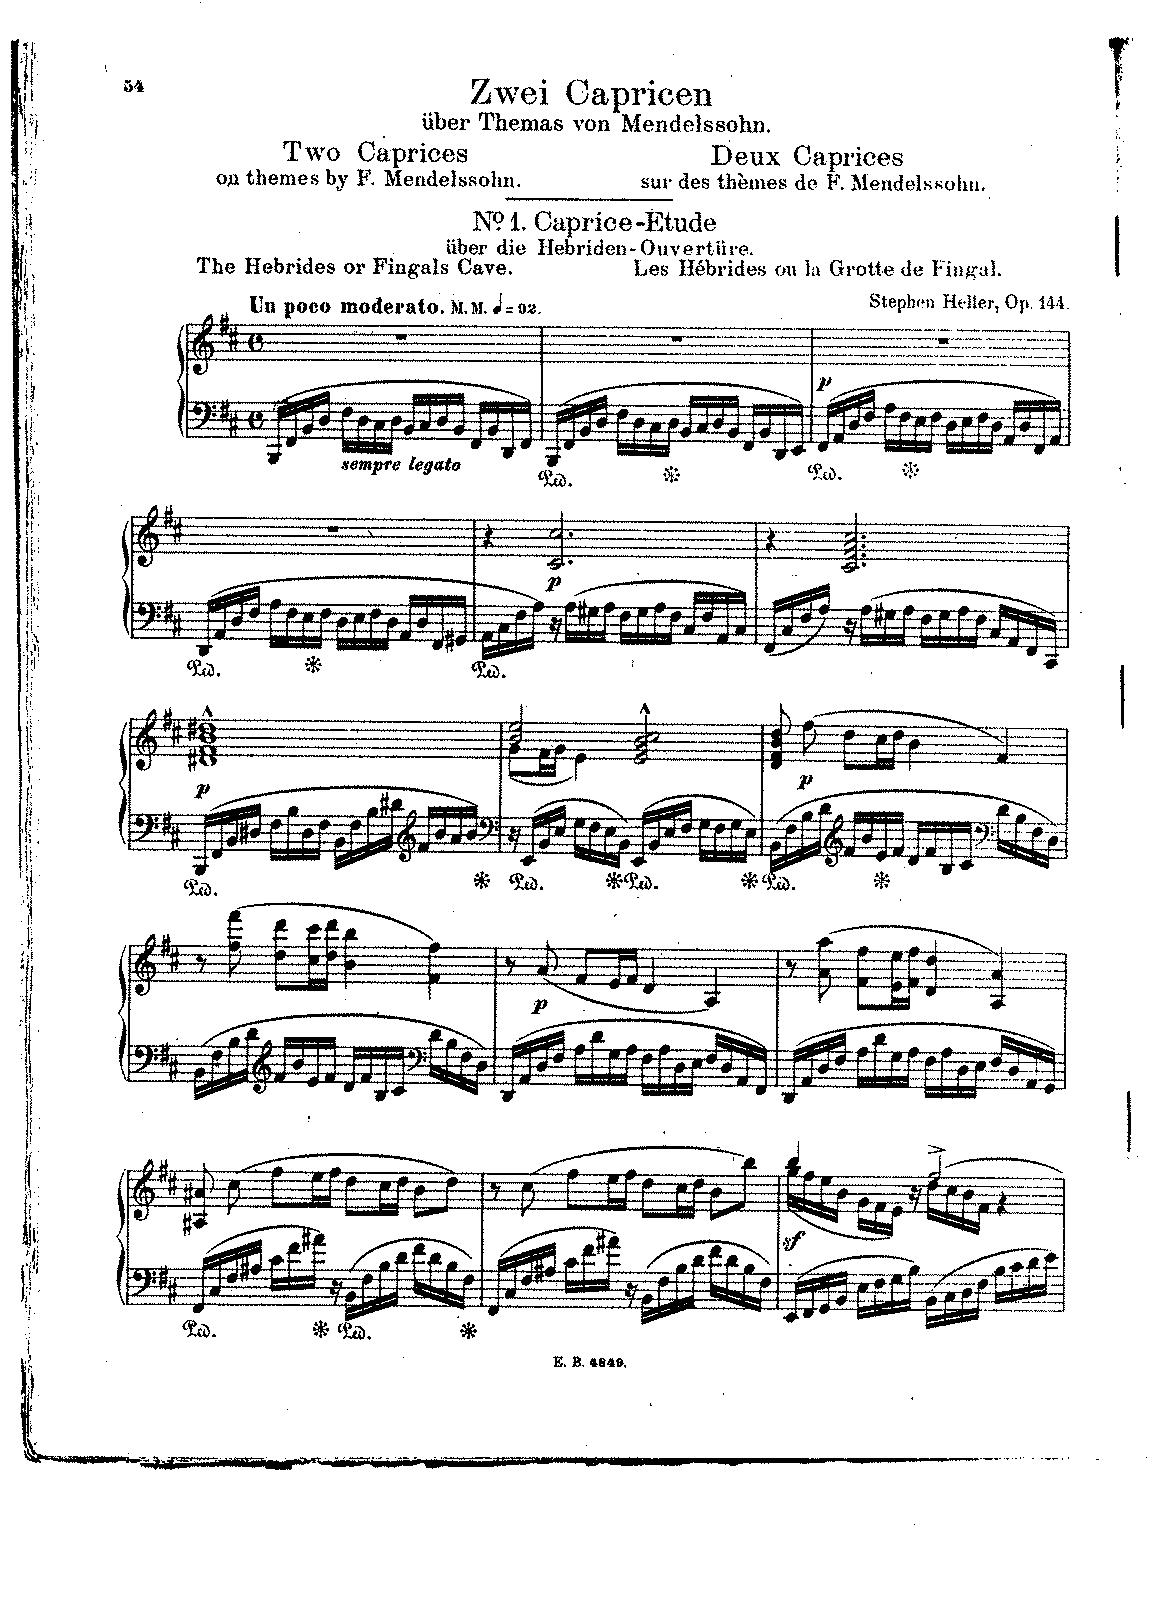 Heller - 2 Caprices on Themes by Mendelssohn No.1 - Caprice-Etude.pdf